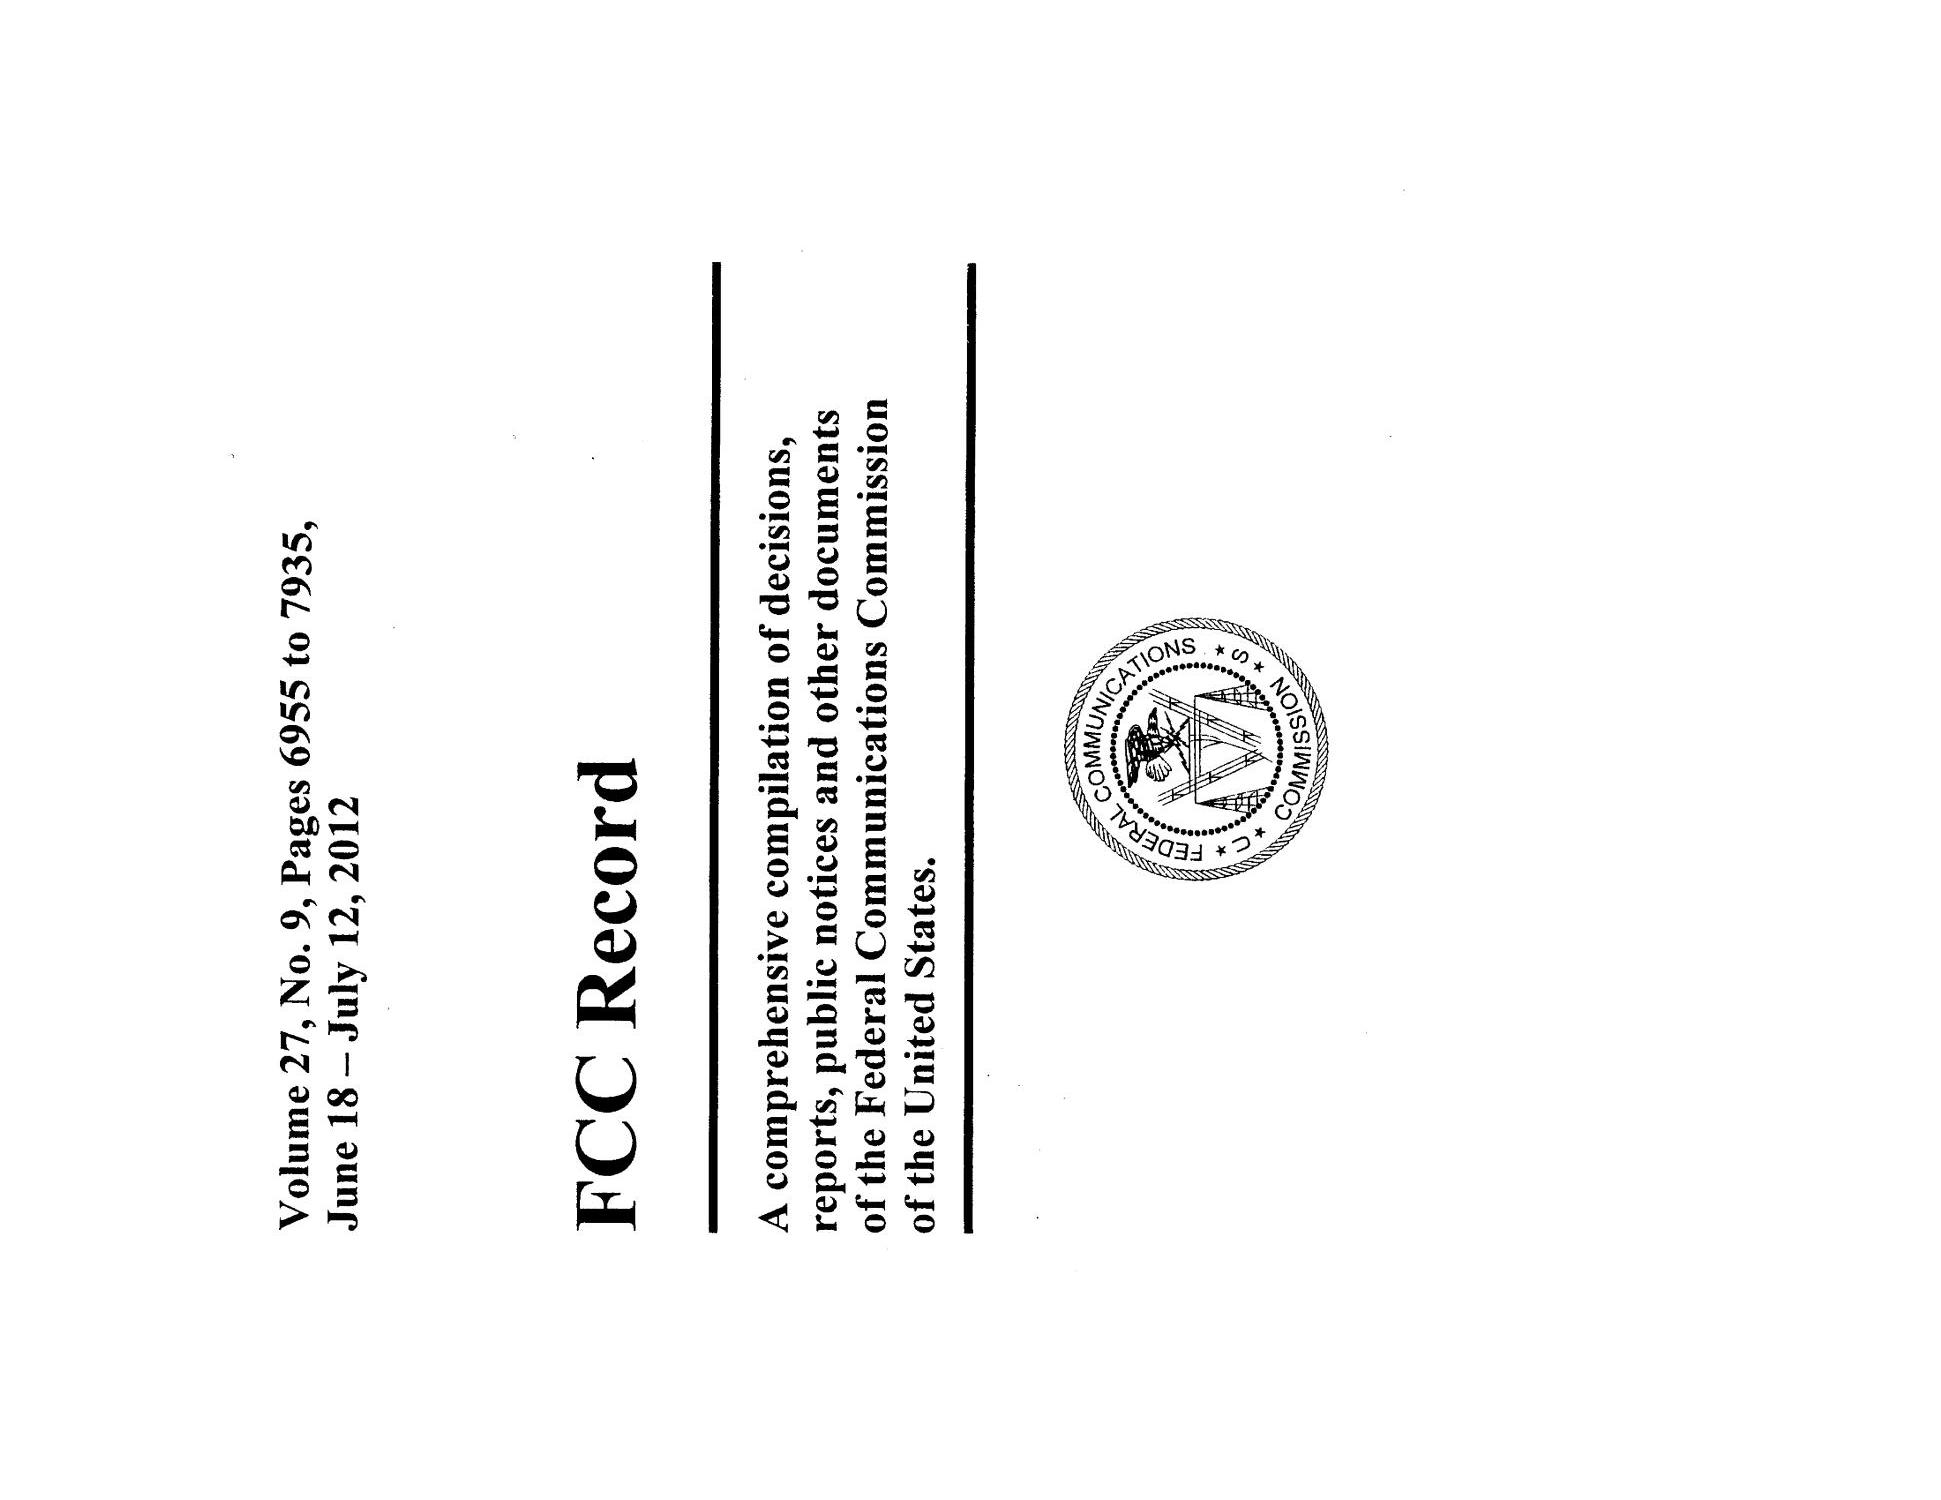 FCC Record, Volume 27, No. 9, Pages 6955 to 7935, June 18 - July 12, 2012                                                                                                      Front Cover